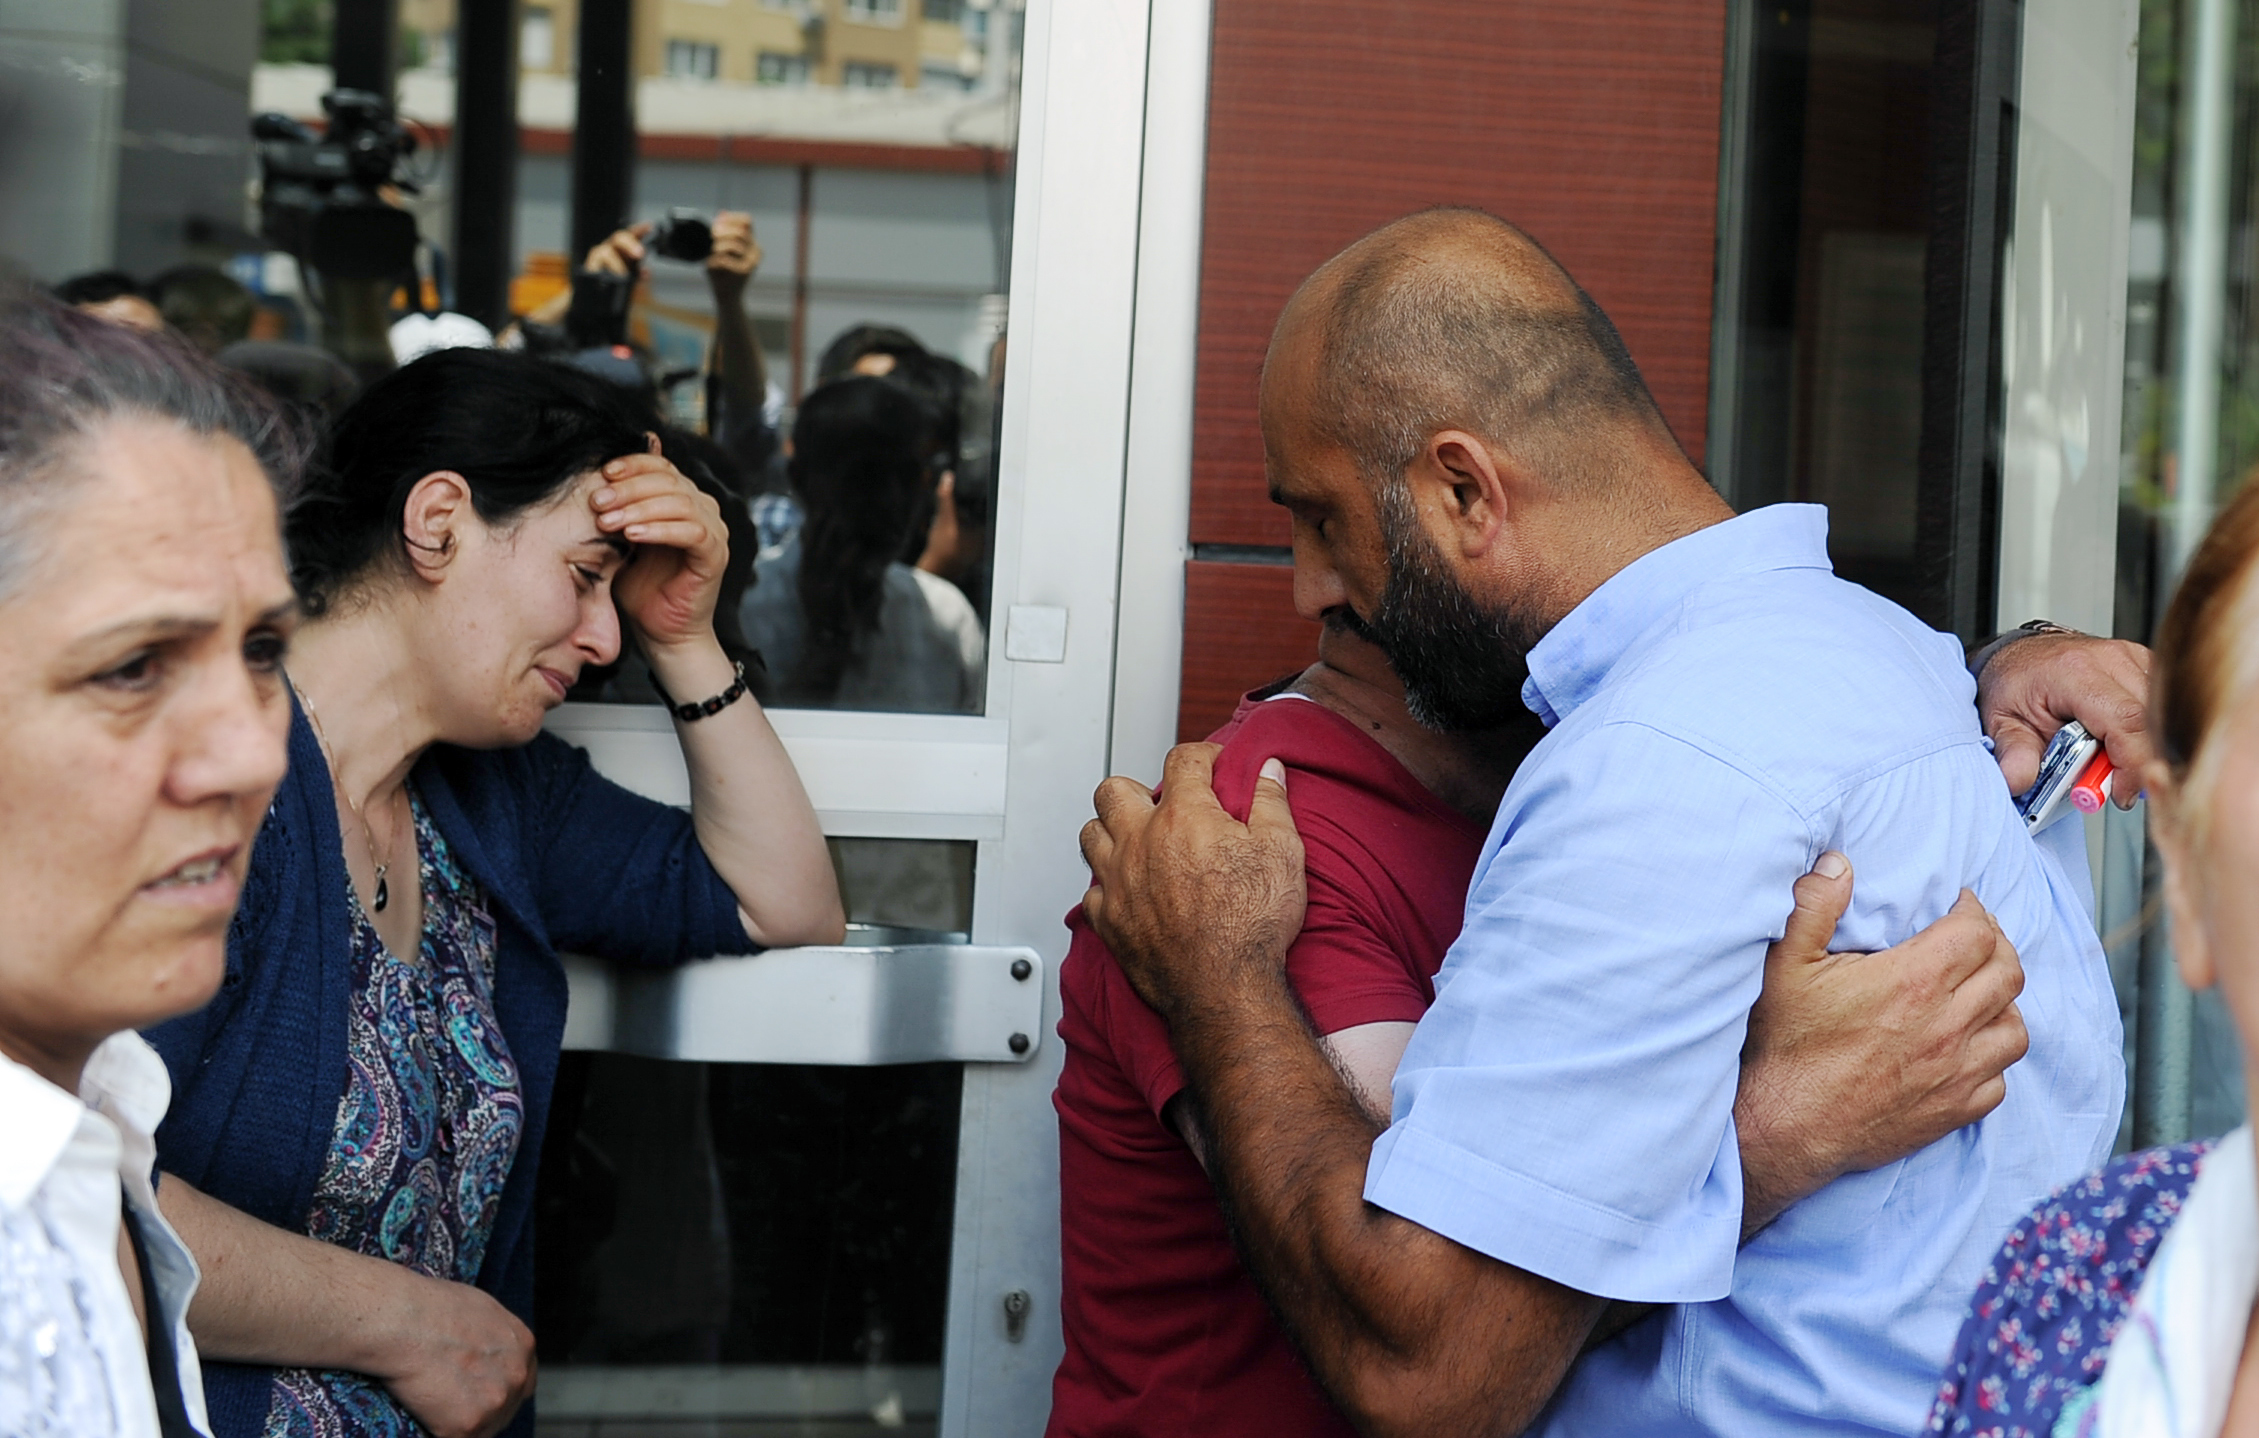 Family members of victims cry outside the Bakirkoy State Hospital in Istanbul, Wednesday, June 29, 2016. Suicide attackers killed dozens and wounded more than 140 at Istanbul's busy Ataturk Airport late Tuesday, the latest in a series of bombings to strike Turkey in recent months. Turkish officials said the massacre was most likely the work of the Islamic State group. Turkish authorities have banned distribution of images relating to the Ataturk airport attack within Turkey. (AP Photo/Omer Kuscu) TURKEY OUT